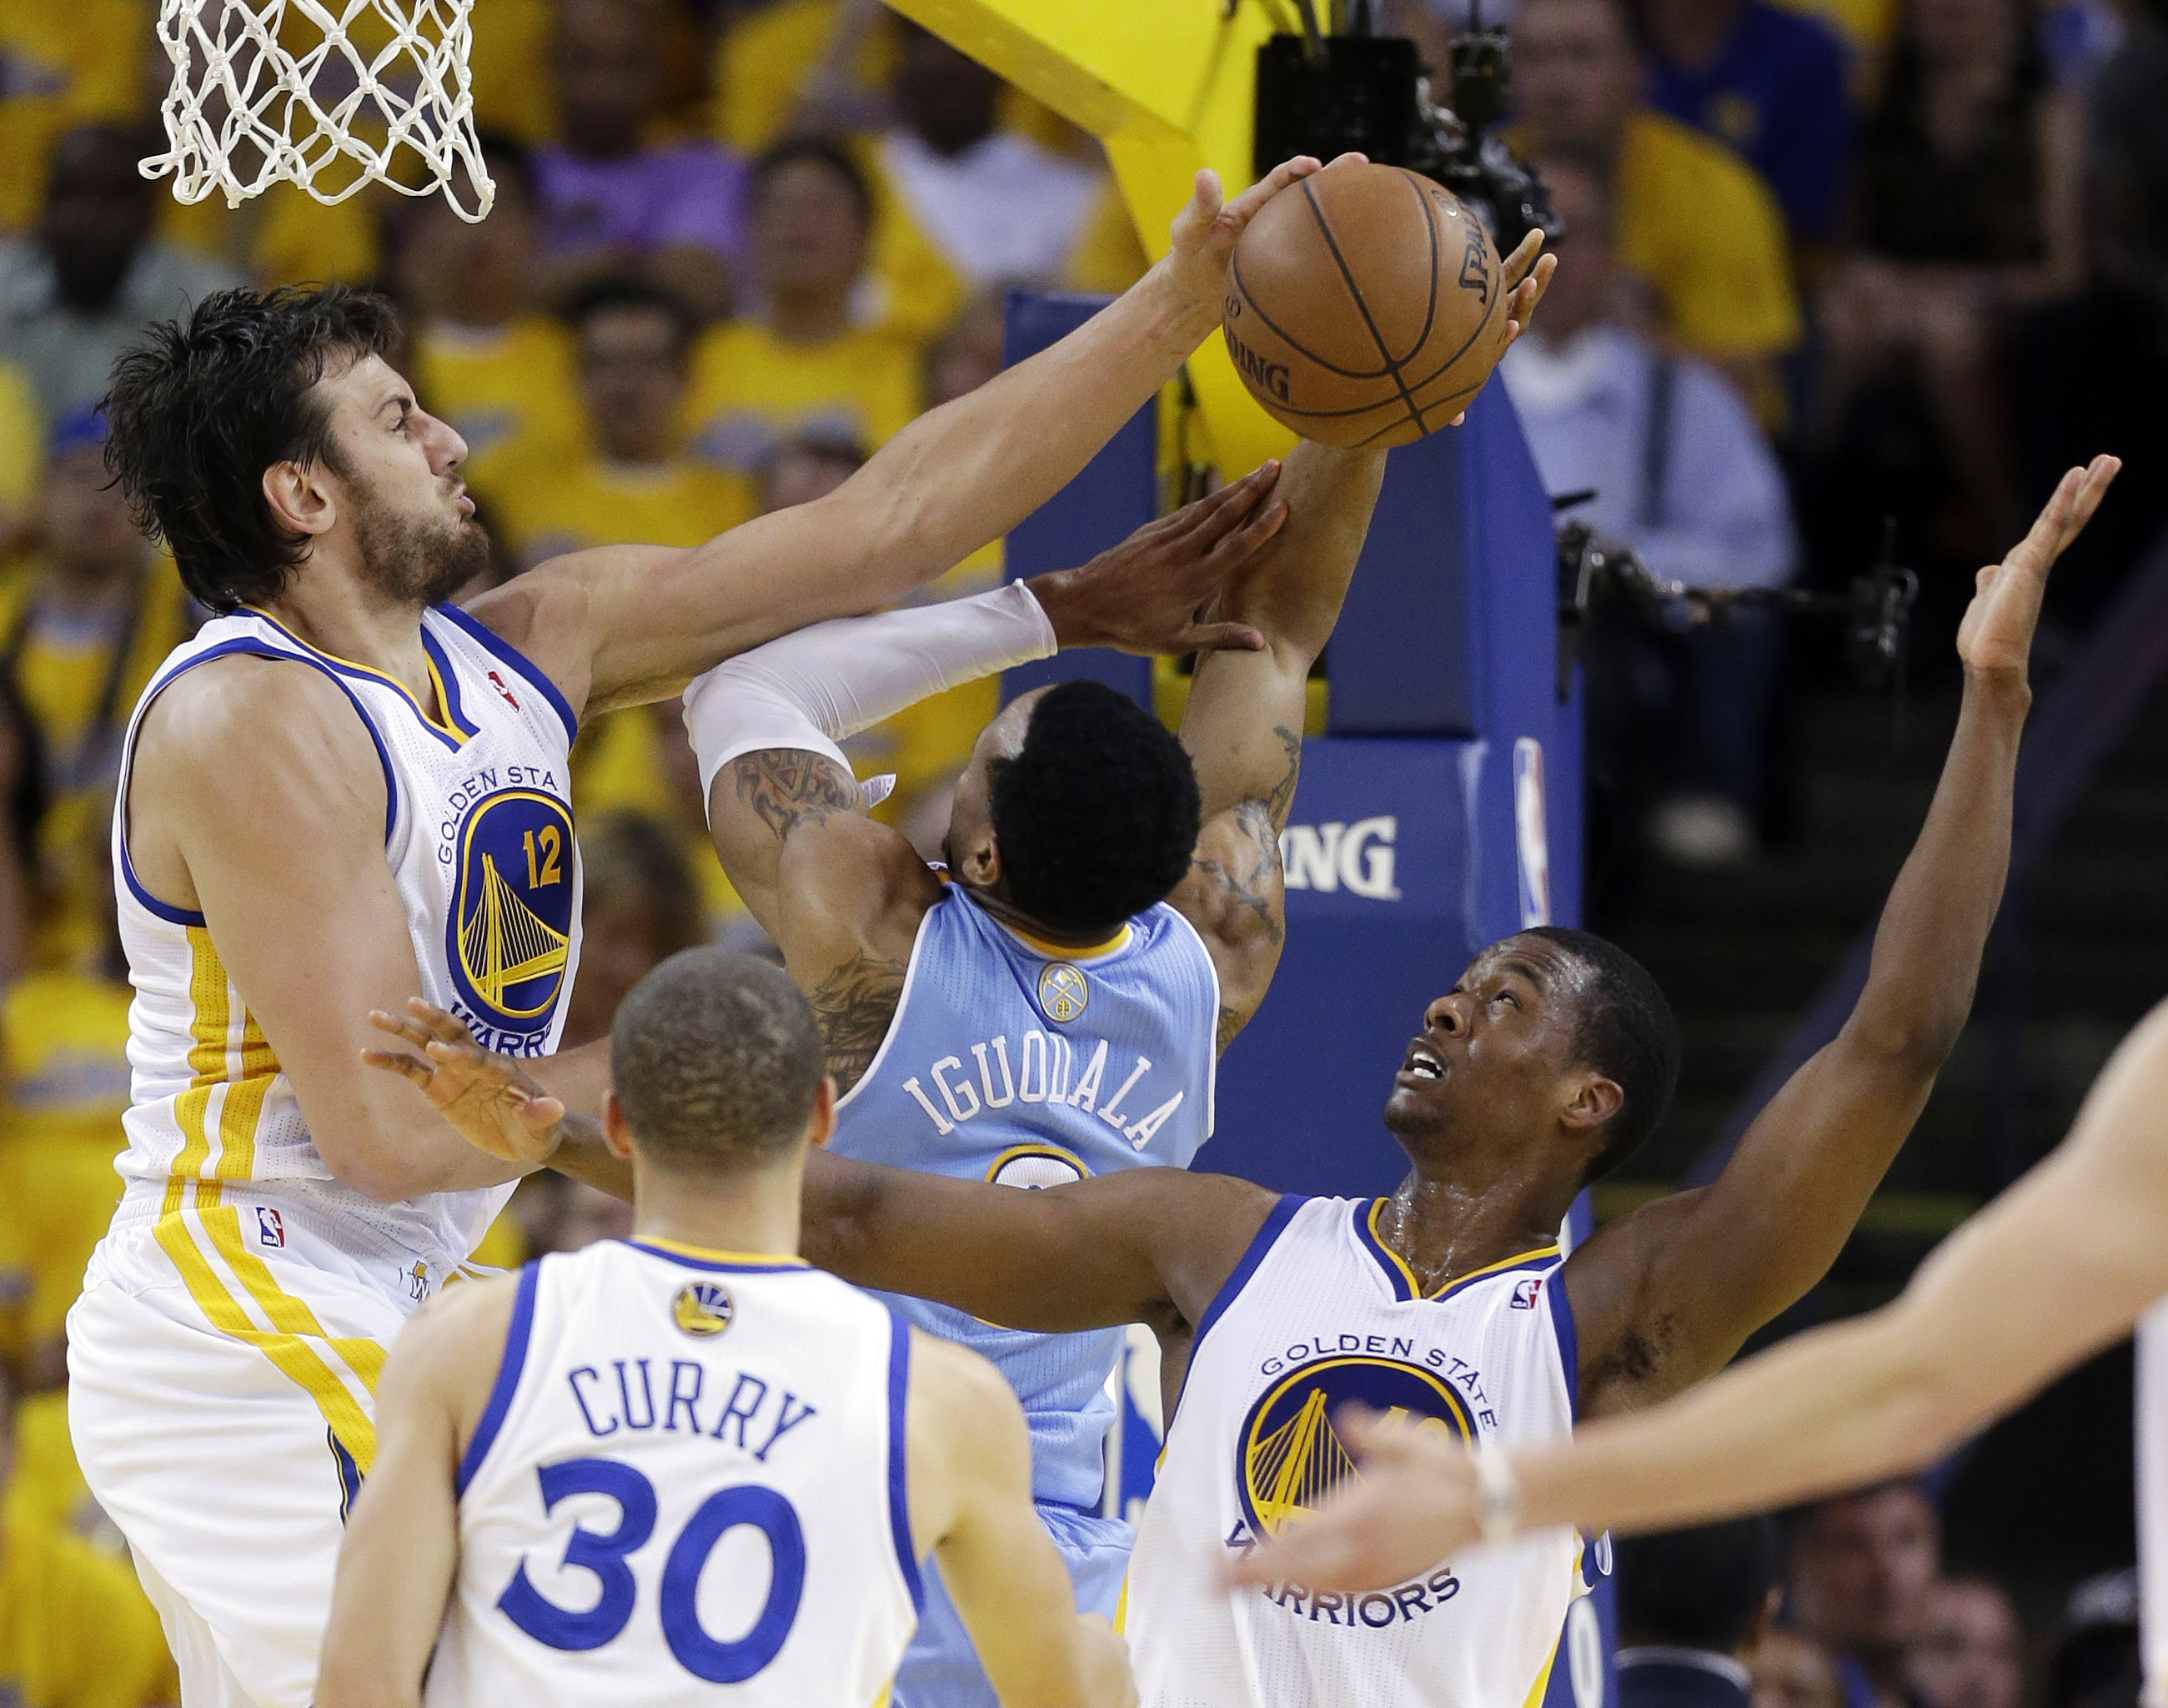 Warriors eliminate Denver with 92-88 win in Game 6 - The Blade